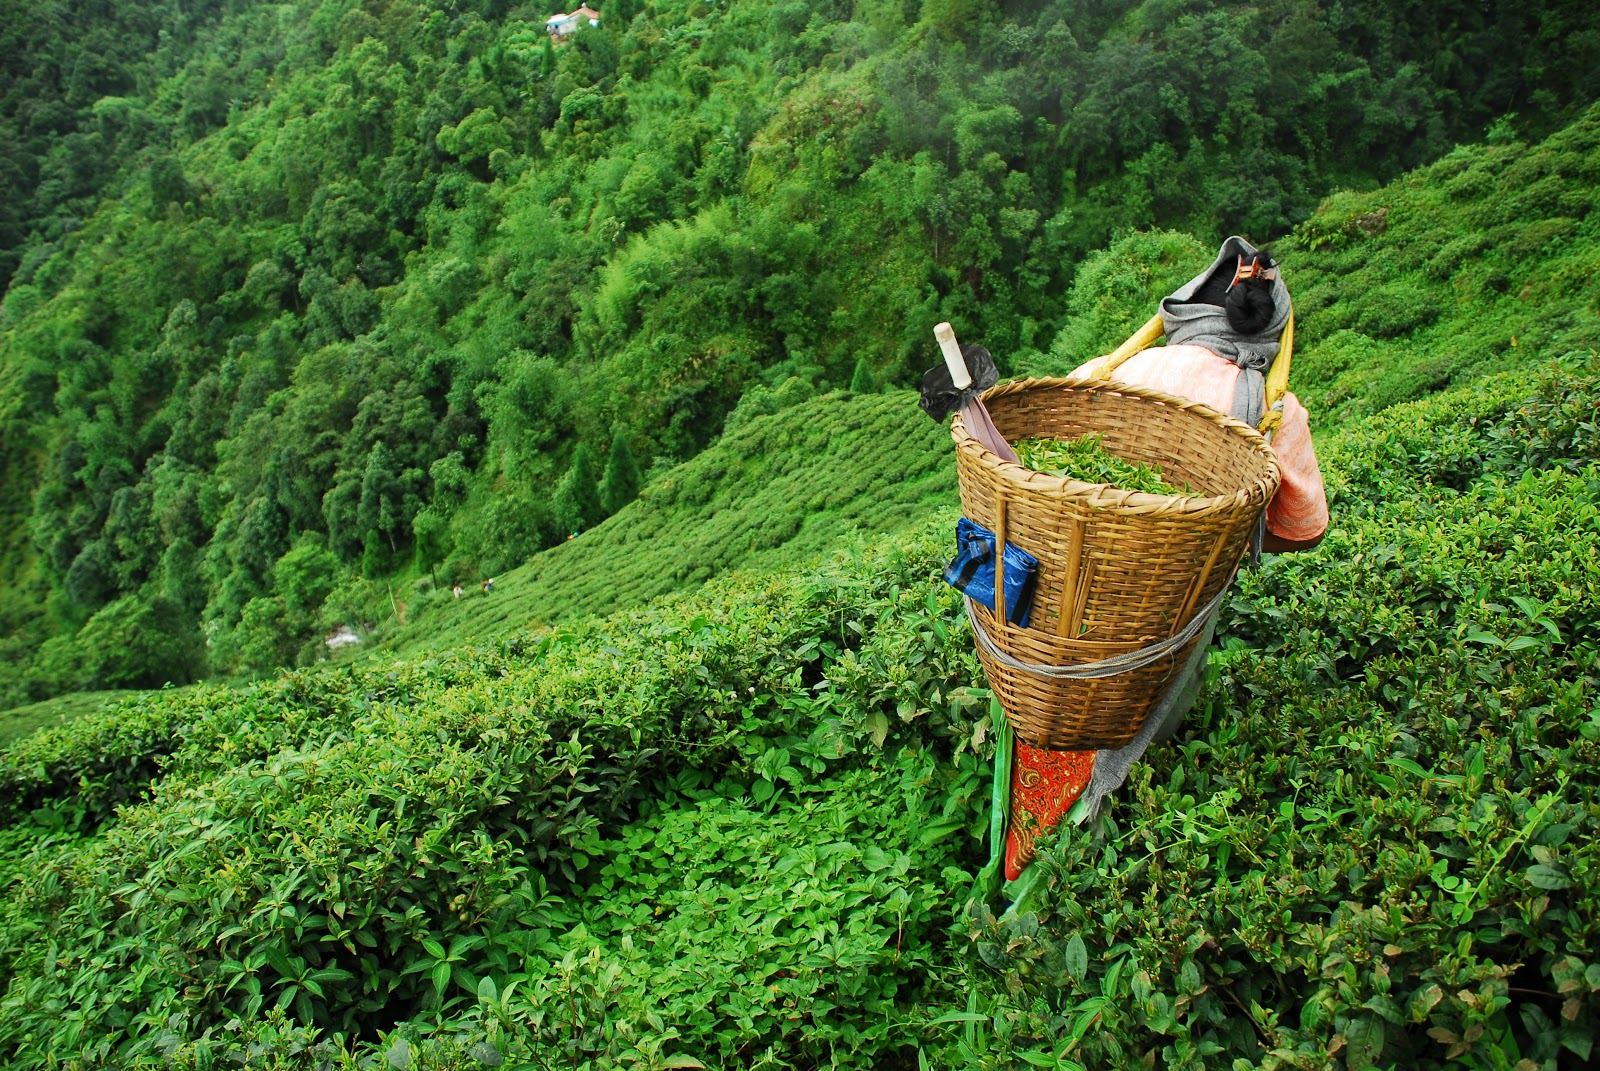 Darjeeling tea: tea cultivation